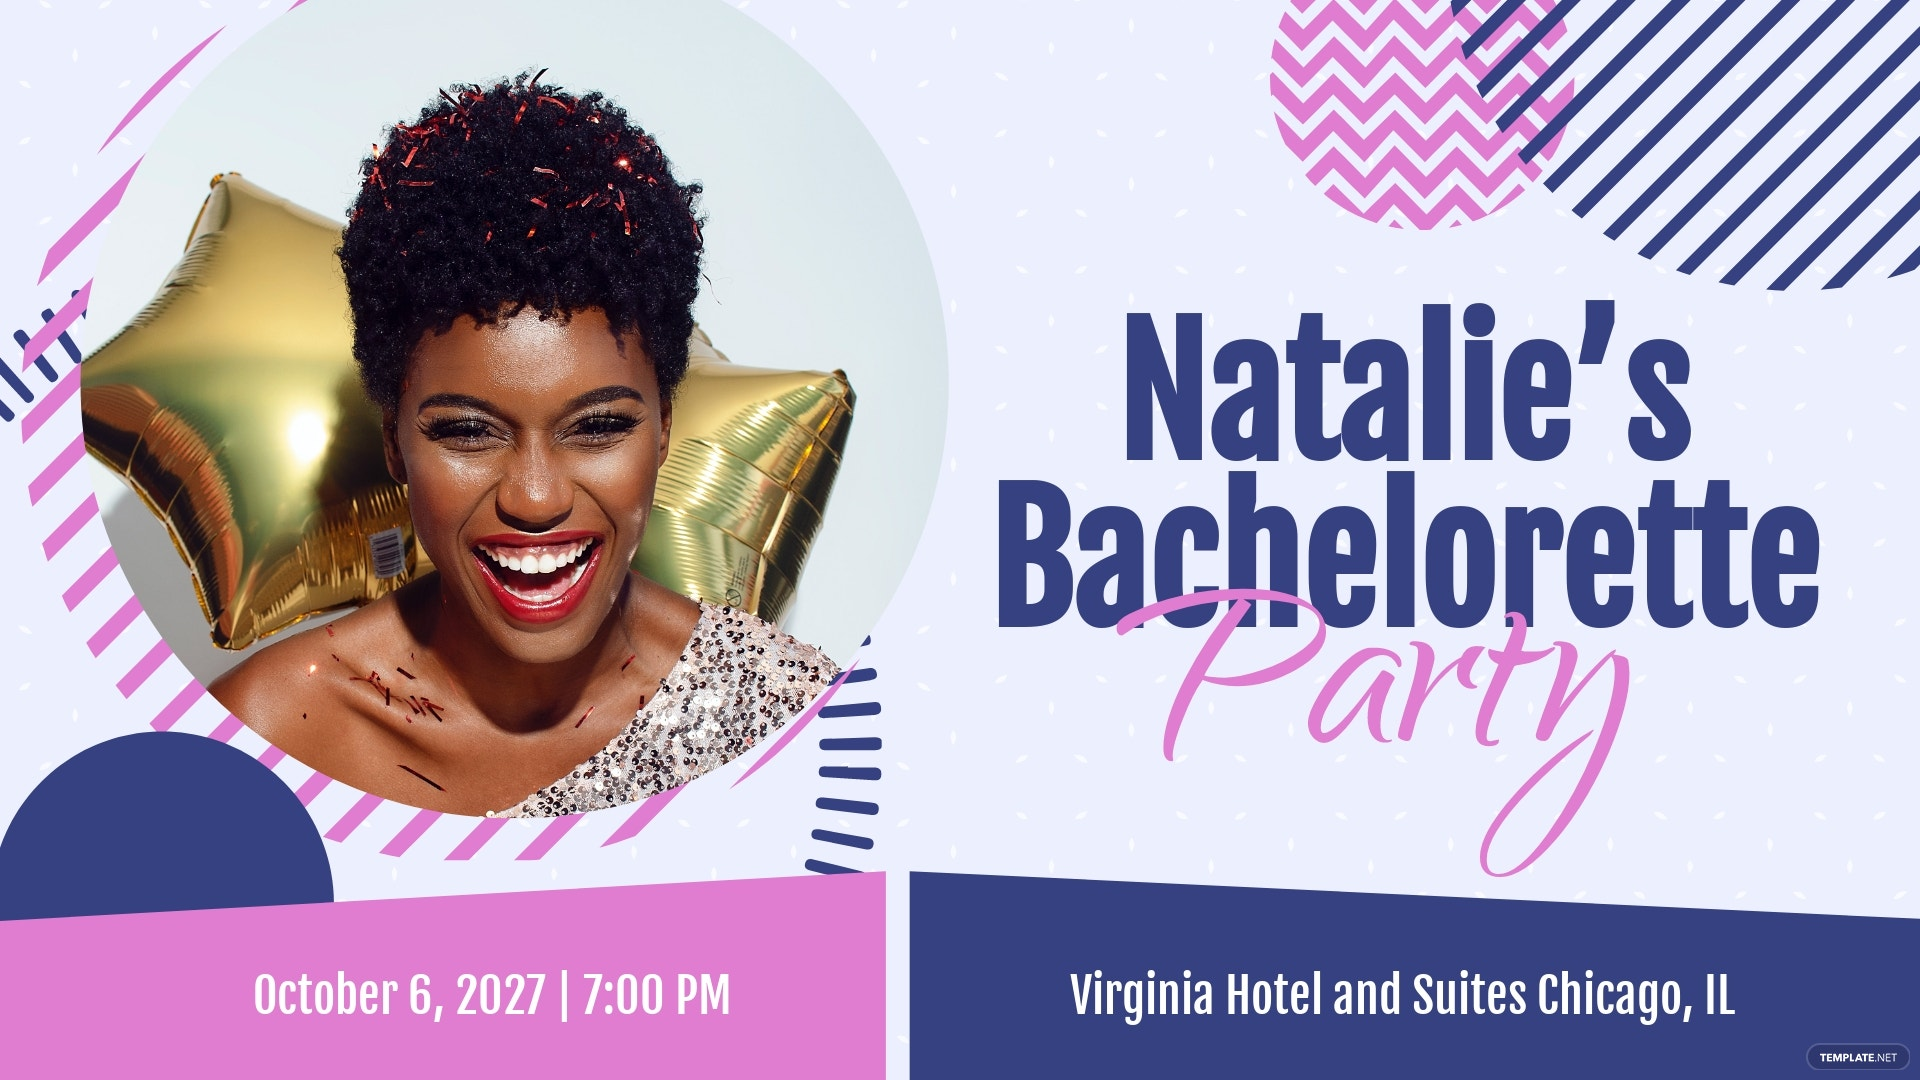 Bachelorette Facebook Event Cover Template